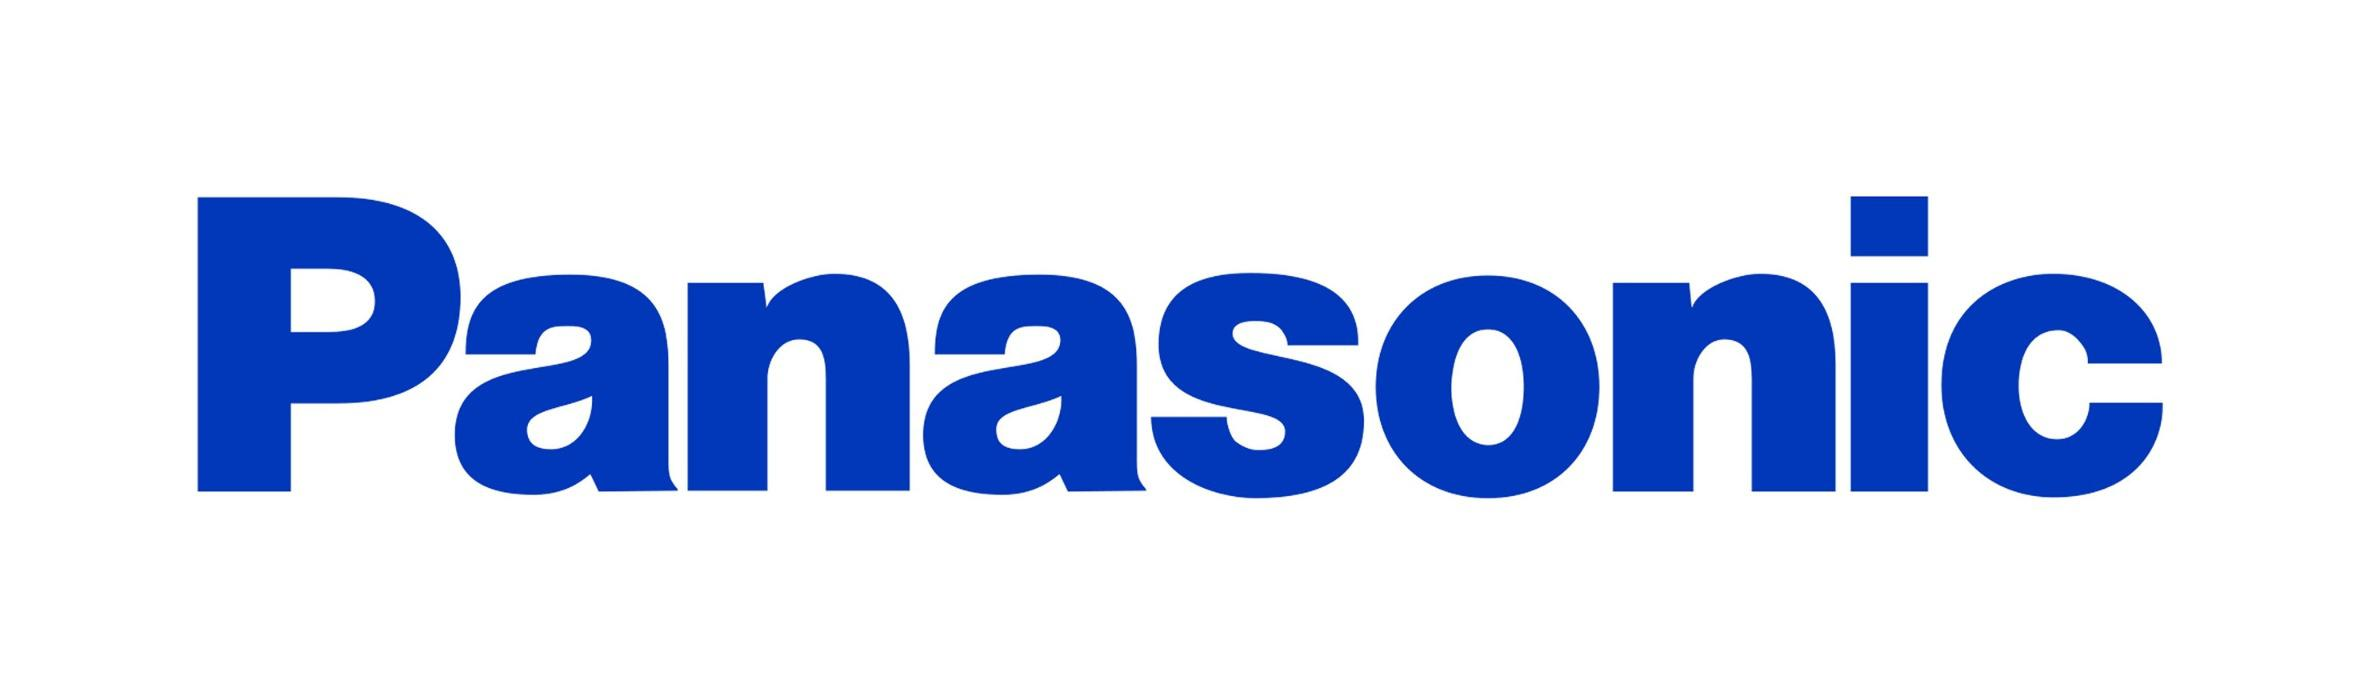 Panasonic Discounts